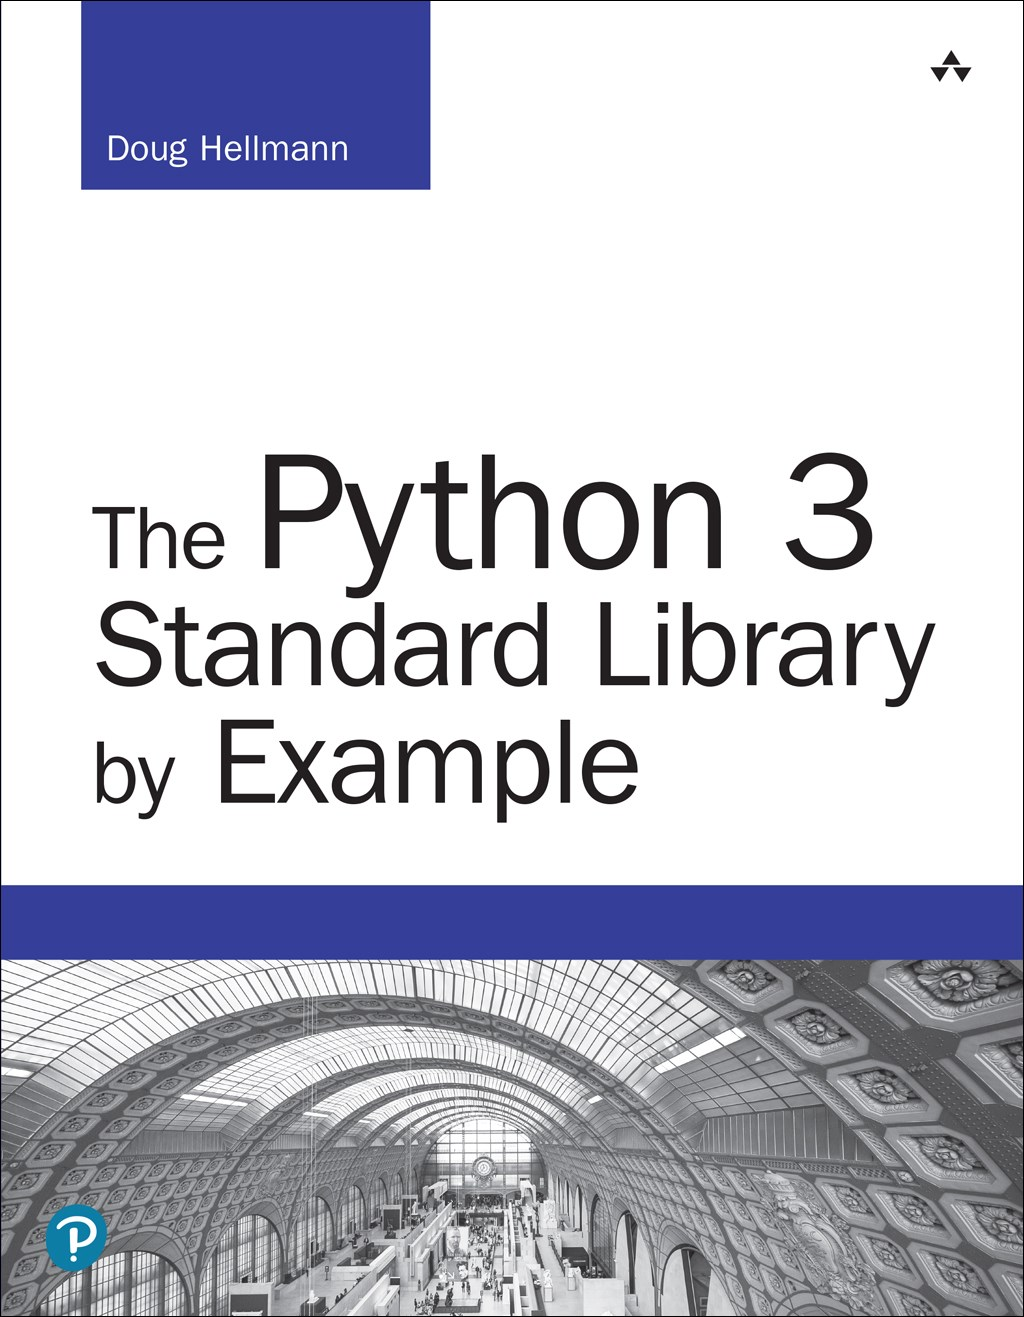 Python 3 Standard Library by Example, The